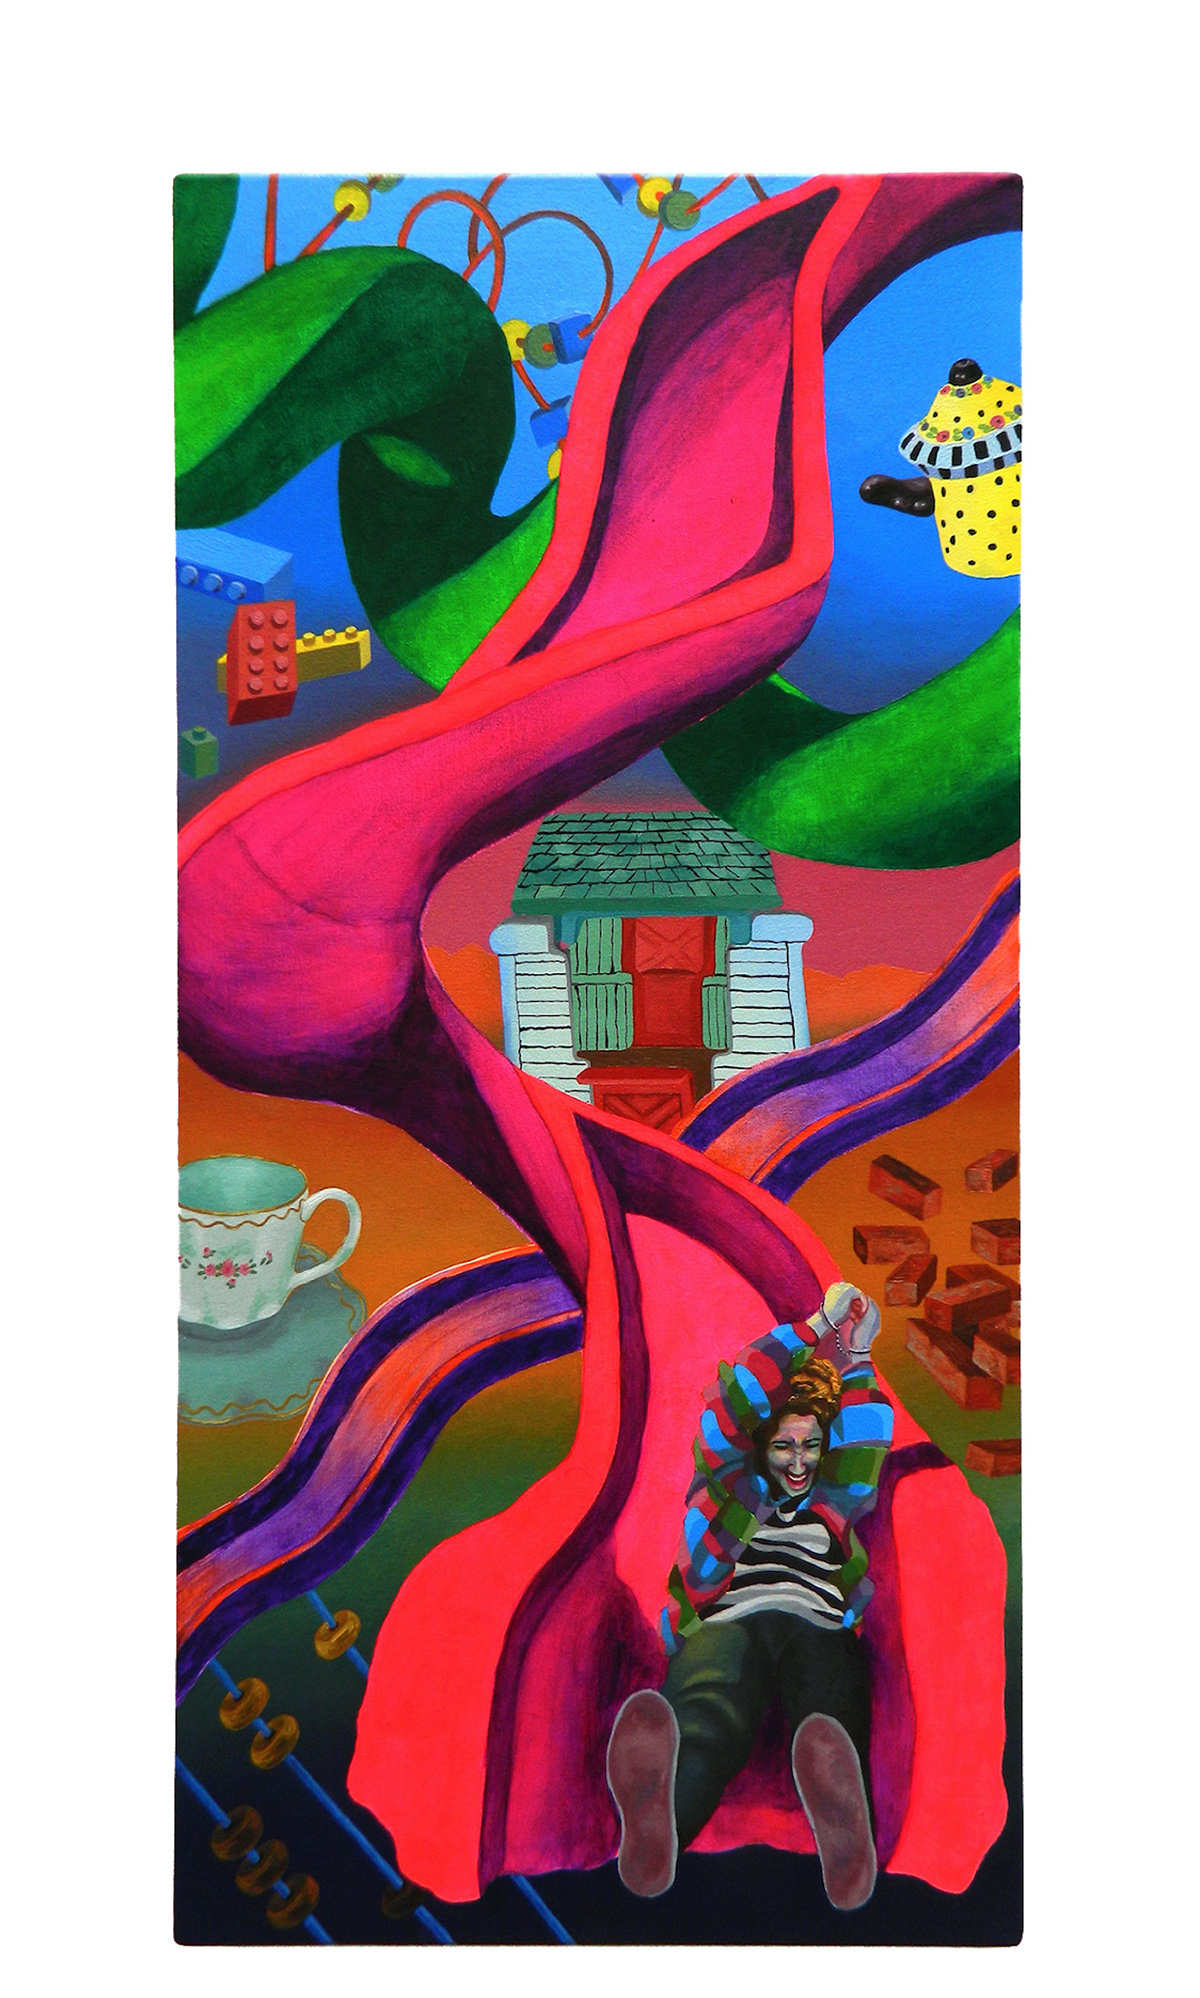 detail detailed childhood surreal hyperreal pattern perpective figurative neon colorful